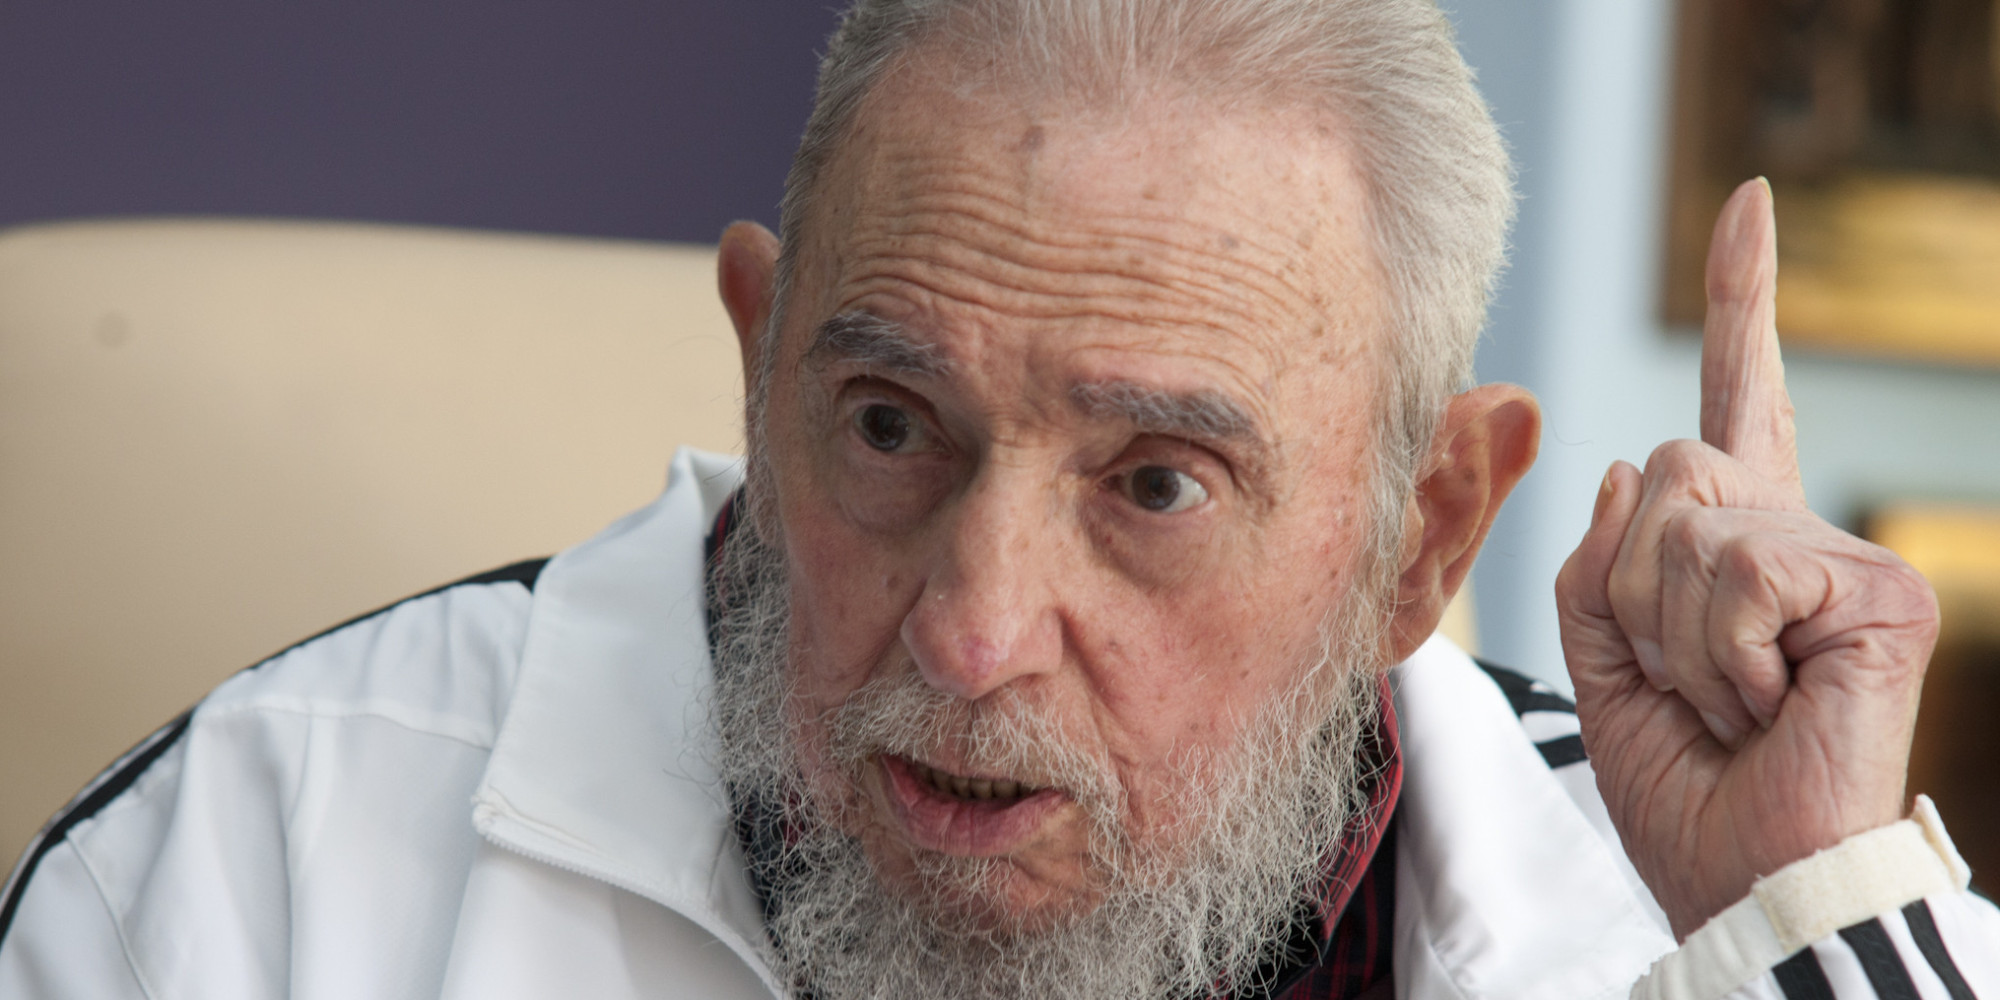 Fidel Castro el 7 de julio de 2014 (AP Photo/Alex Castro, File)